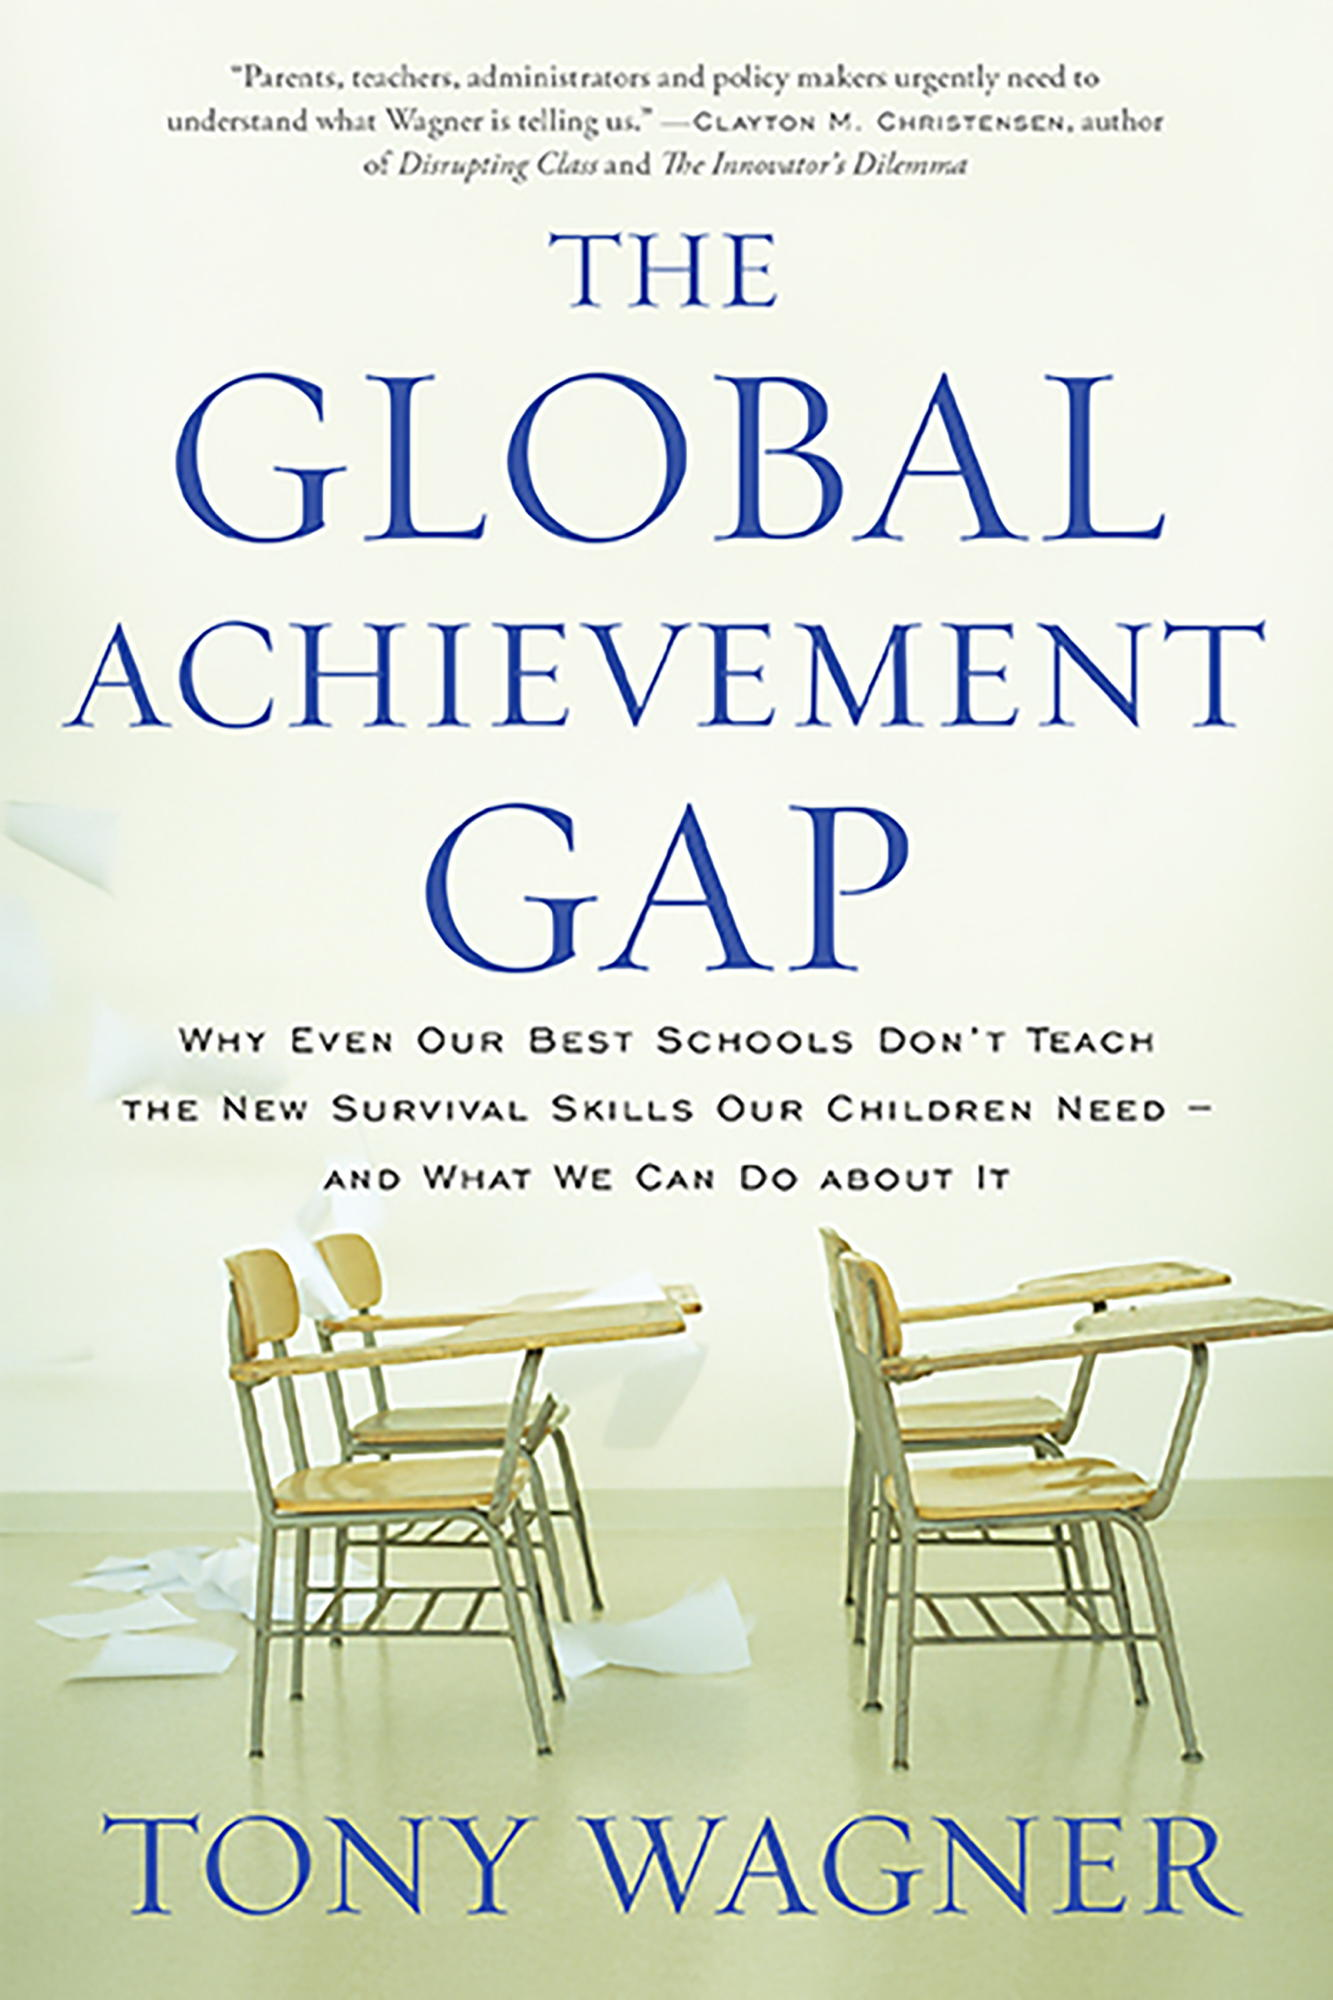 Download Ebook The Global Achievement Gap by Tony Wagner Pdf